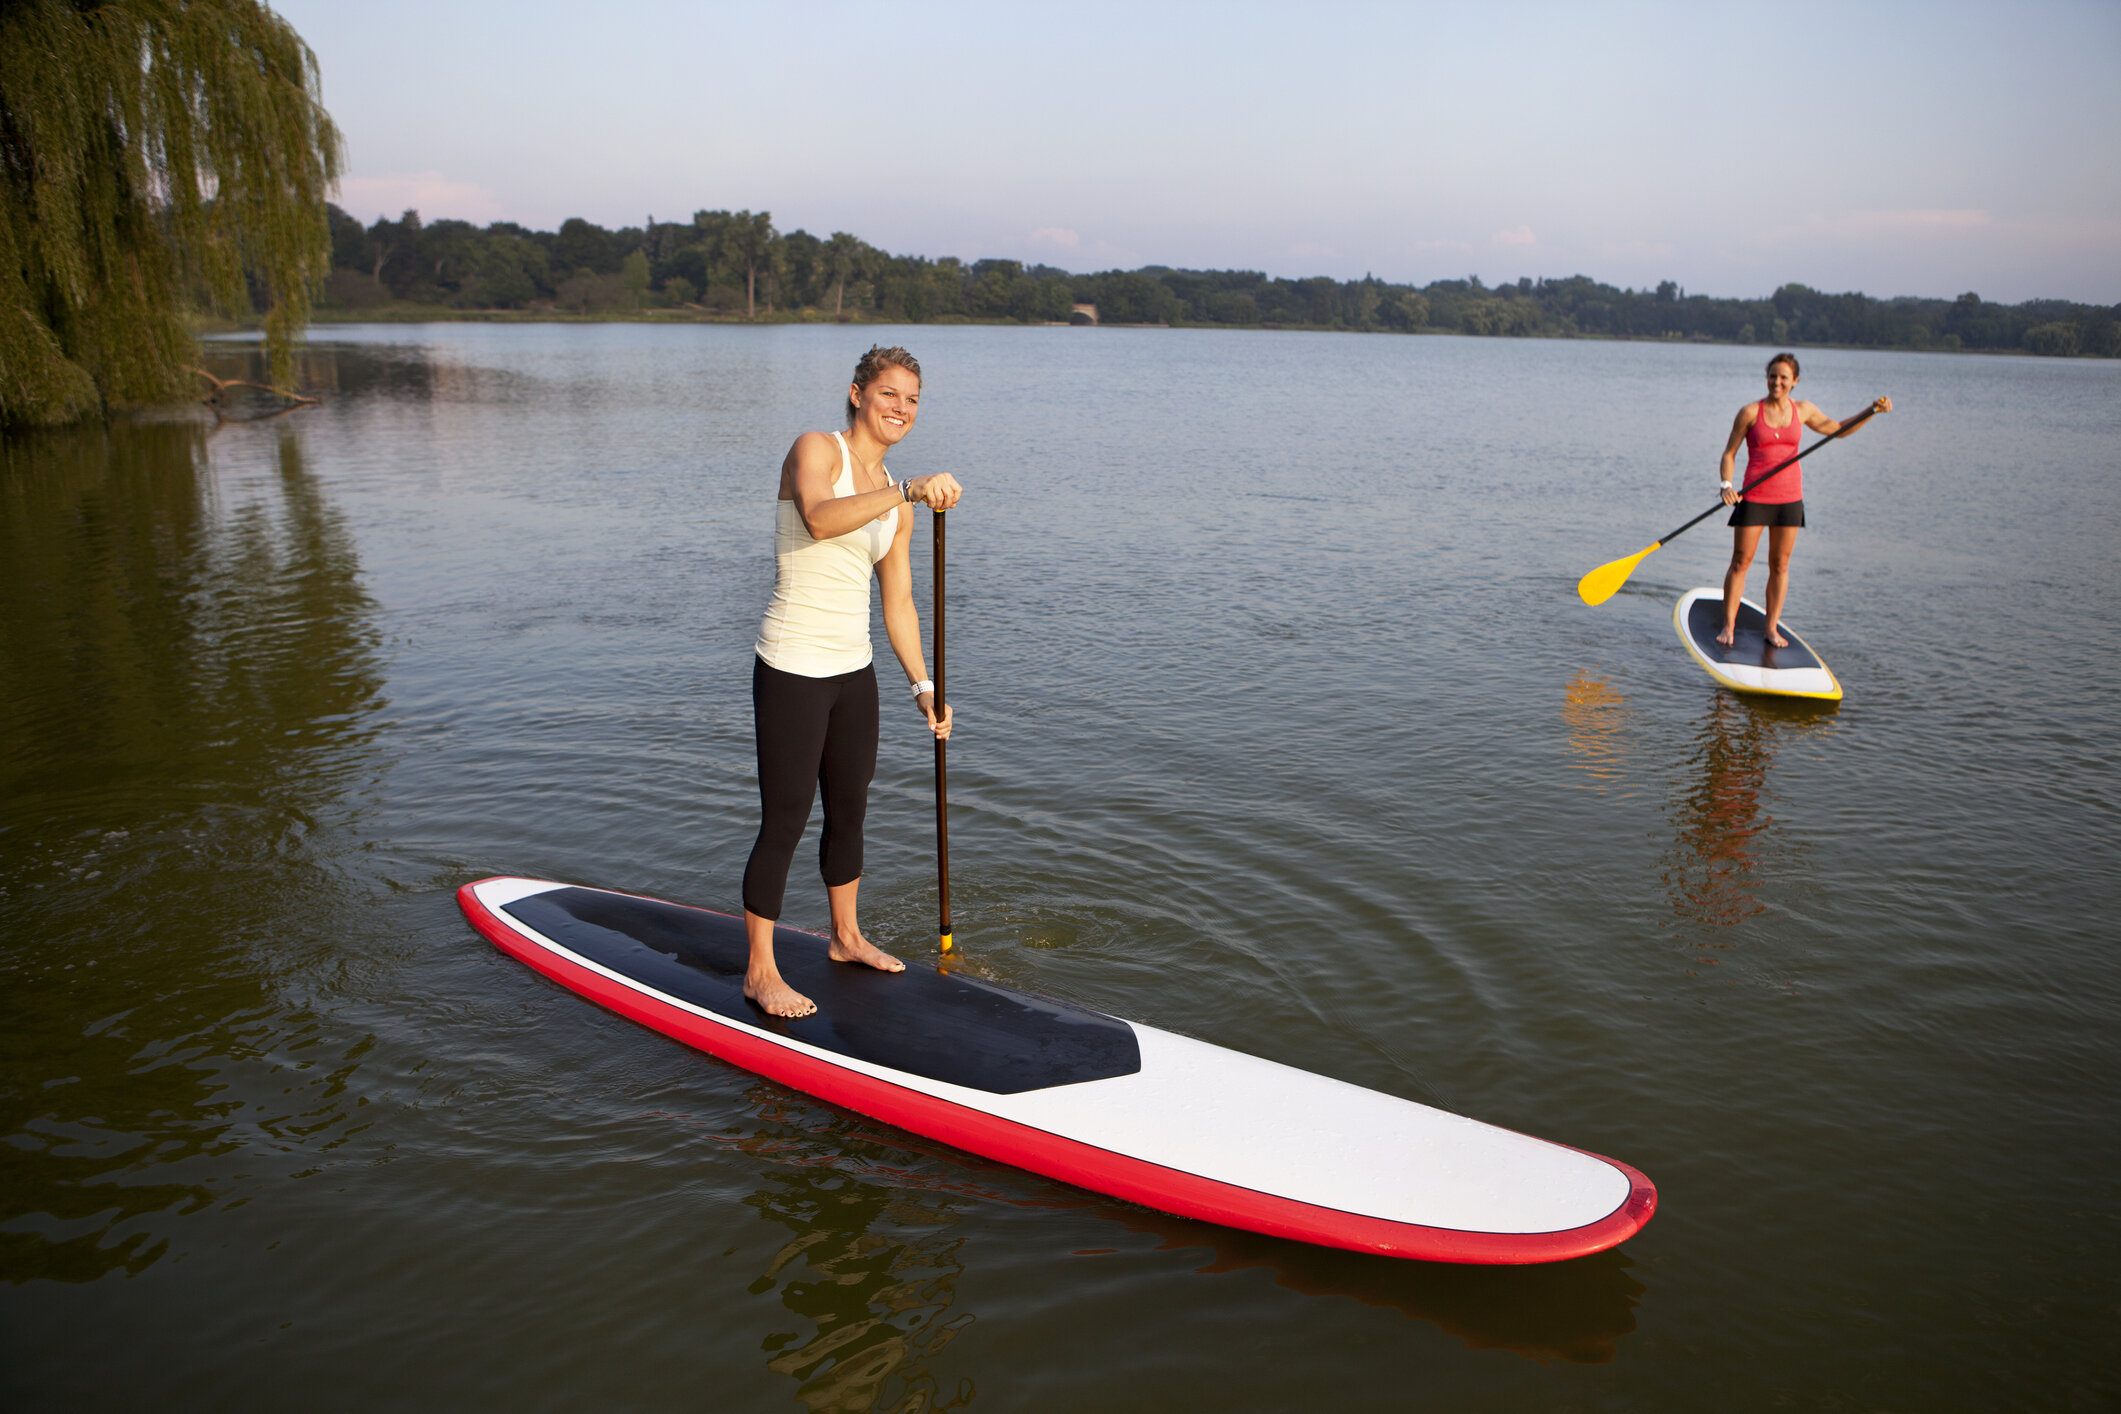 """Balance"" A Paddleboard Adventure- Maintaining A Prayer/Work Balance - Come join us as we have fun balancing on a paddle board in the beautiful Marsh Creek State Park! Let's reflect on how Jesus invites us to do the same in our day-to-day lives!"